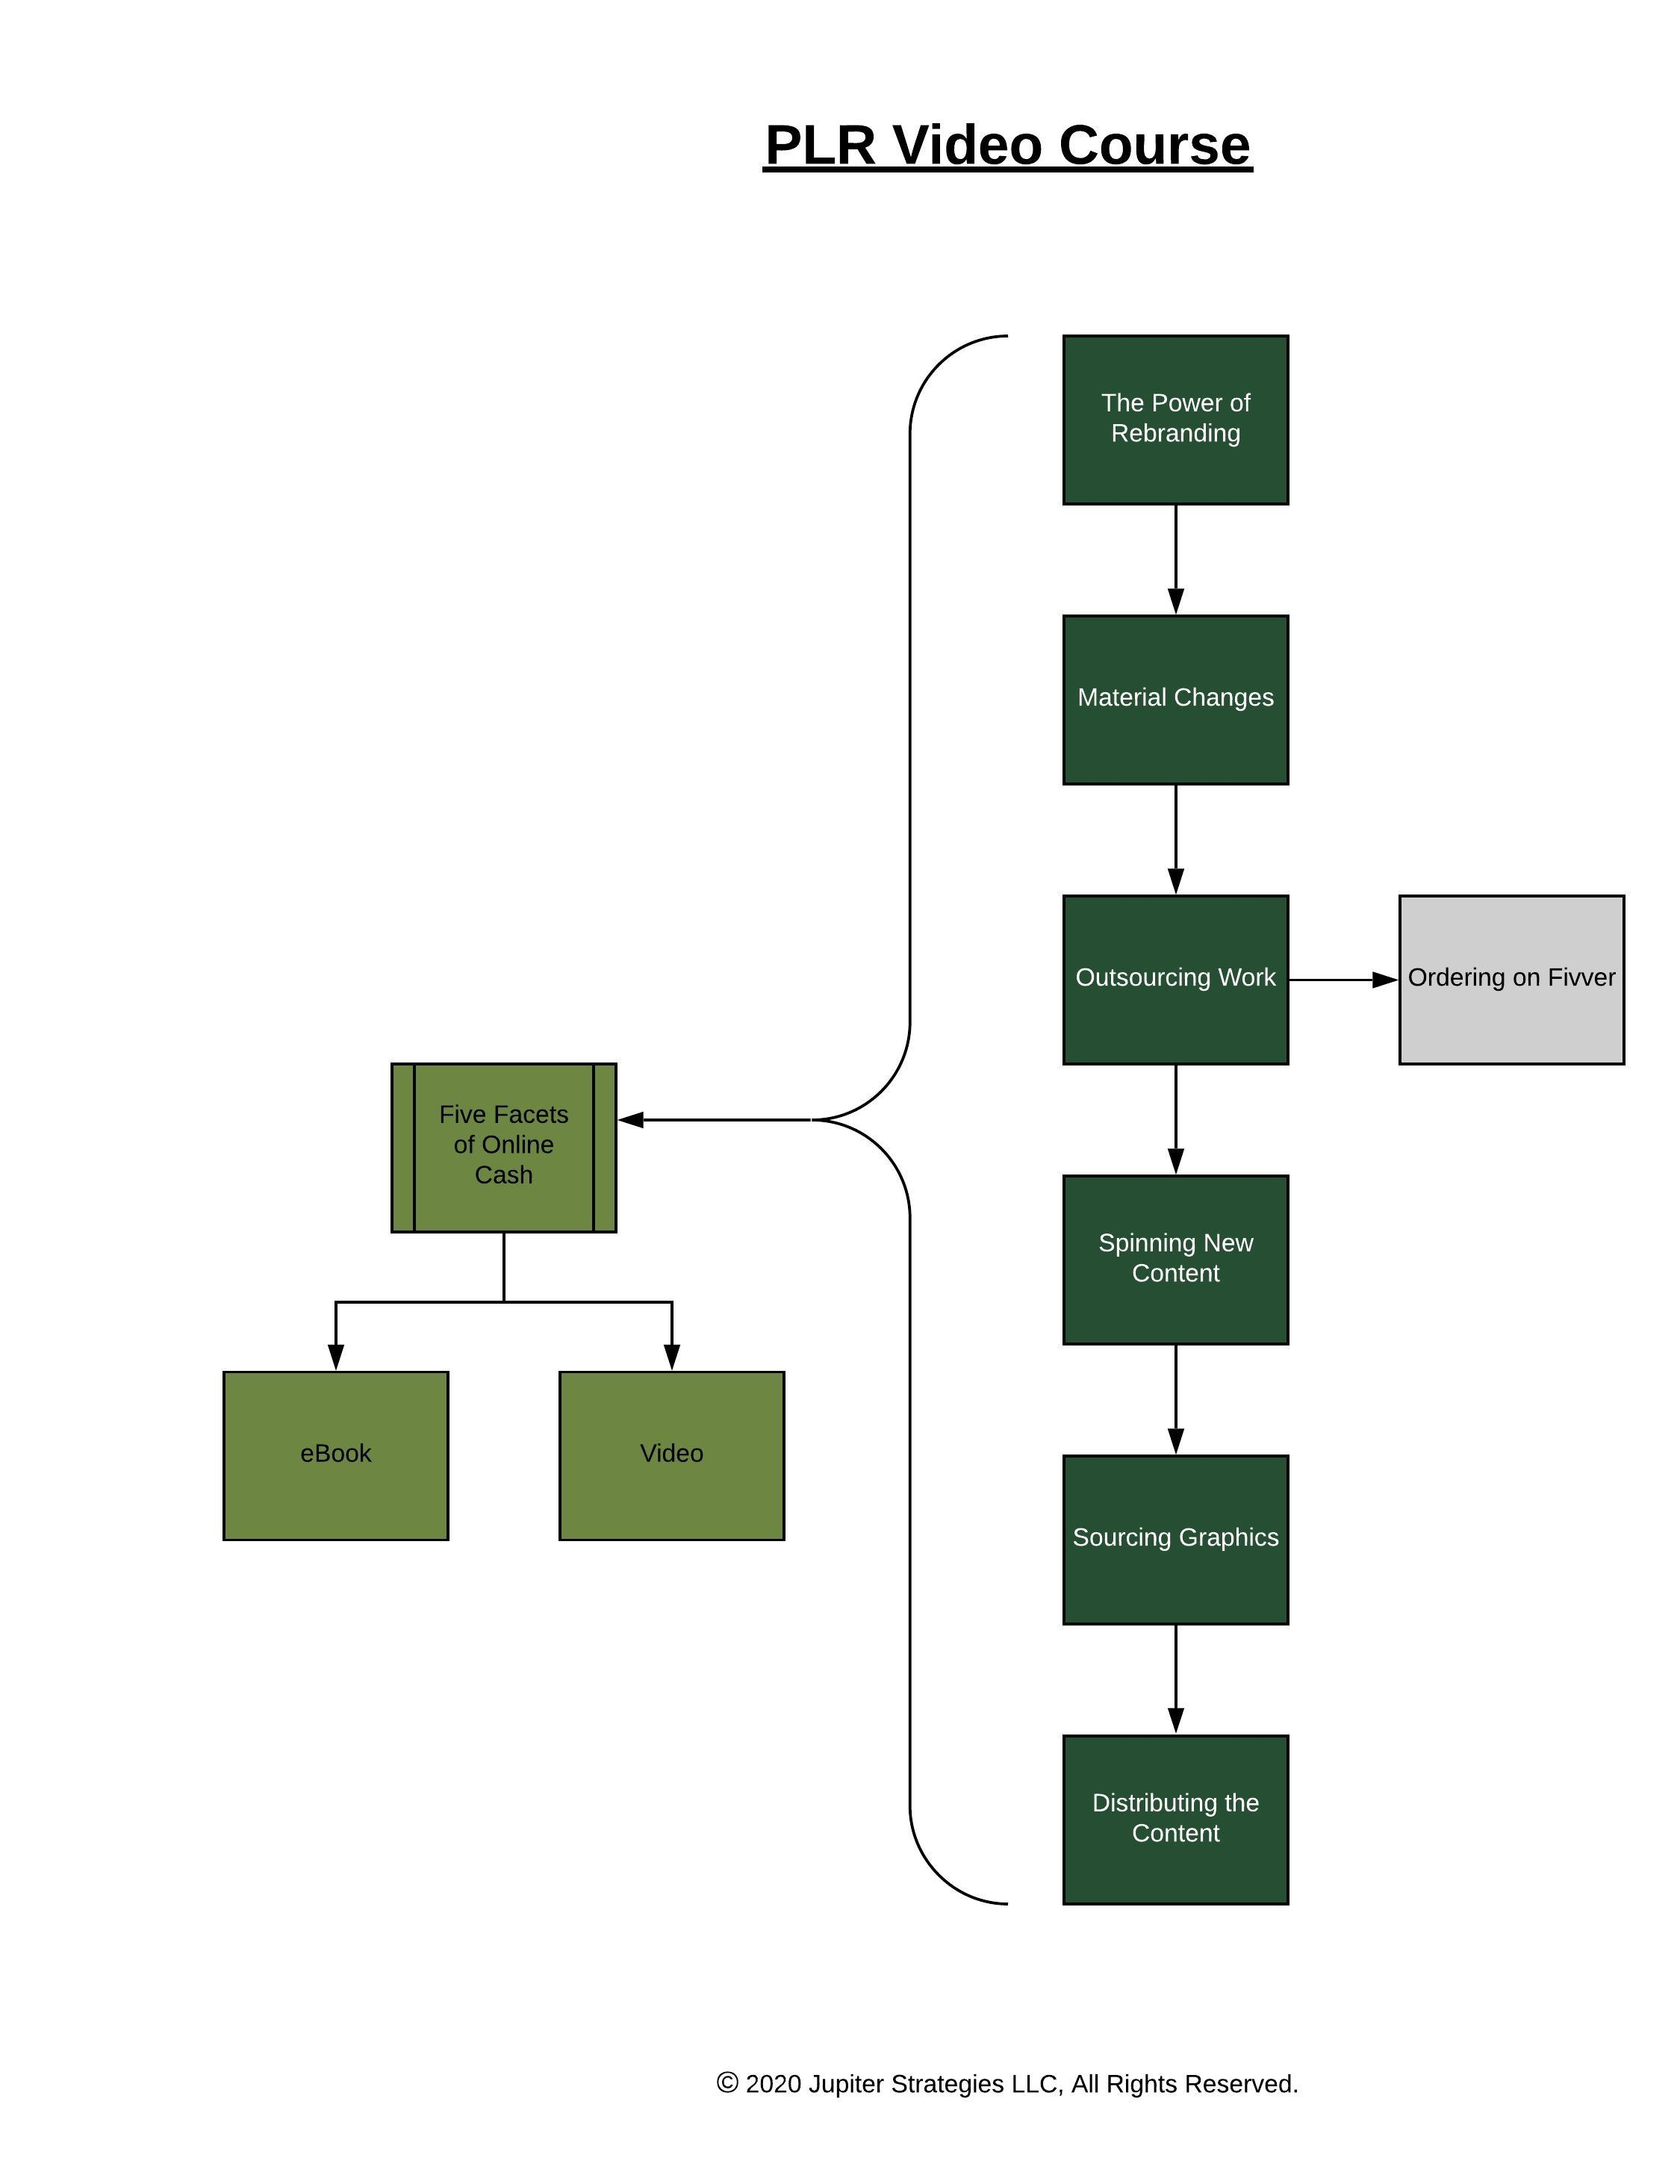 Image of PLR Video Course layout